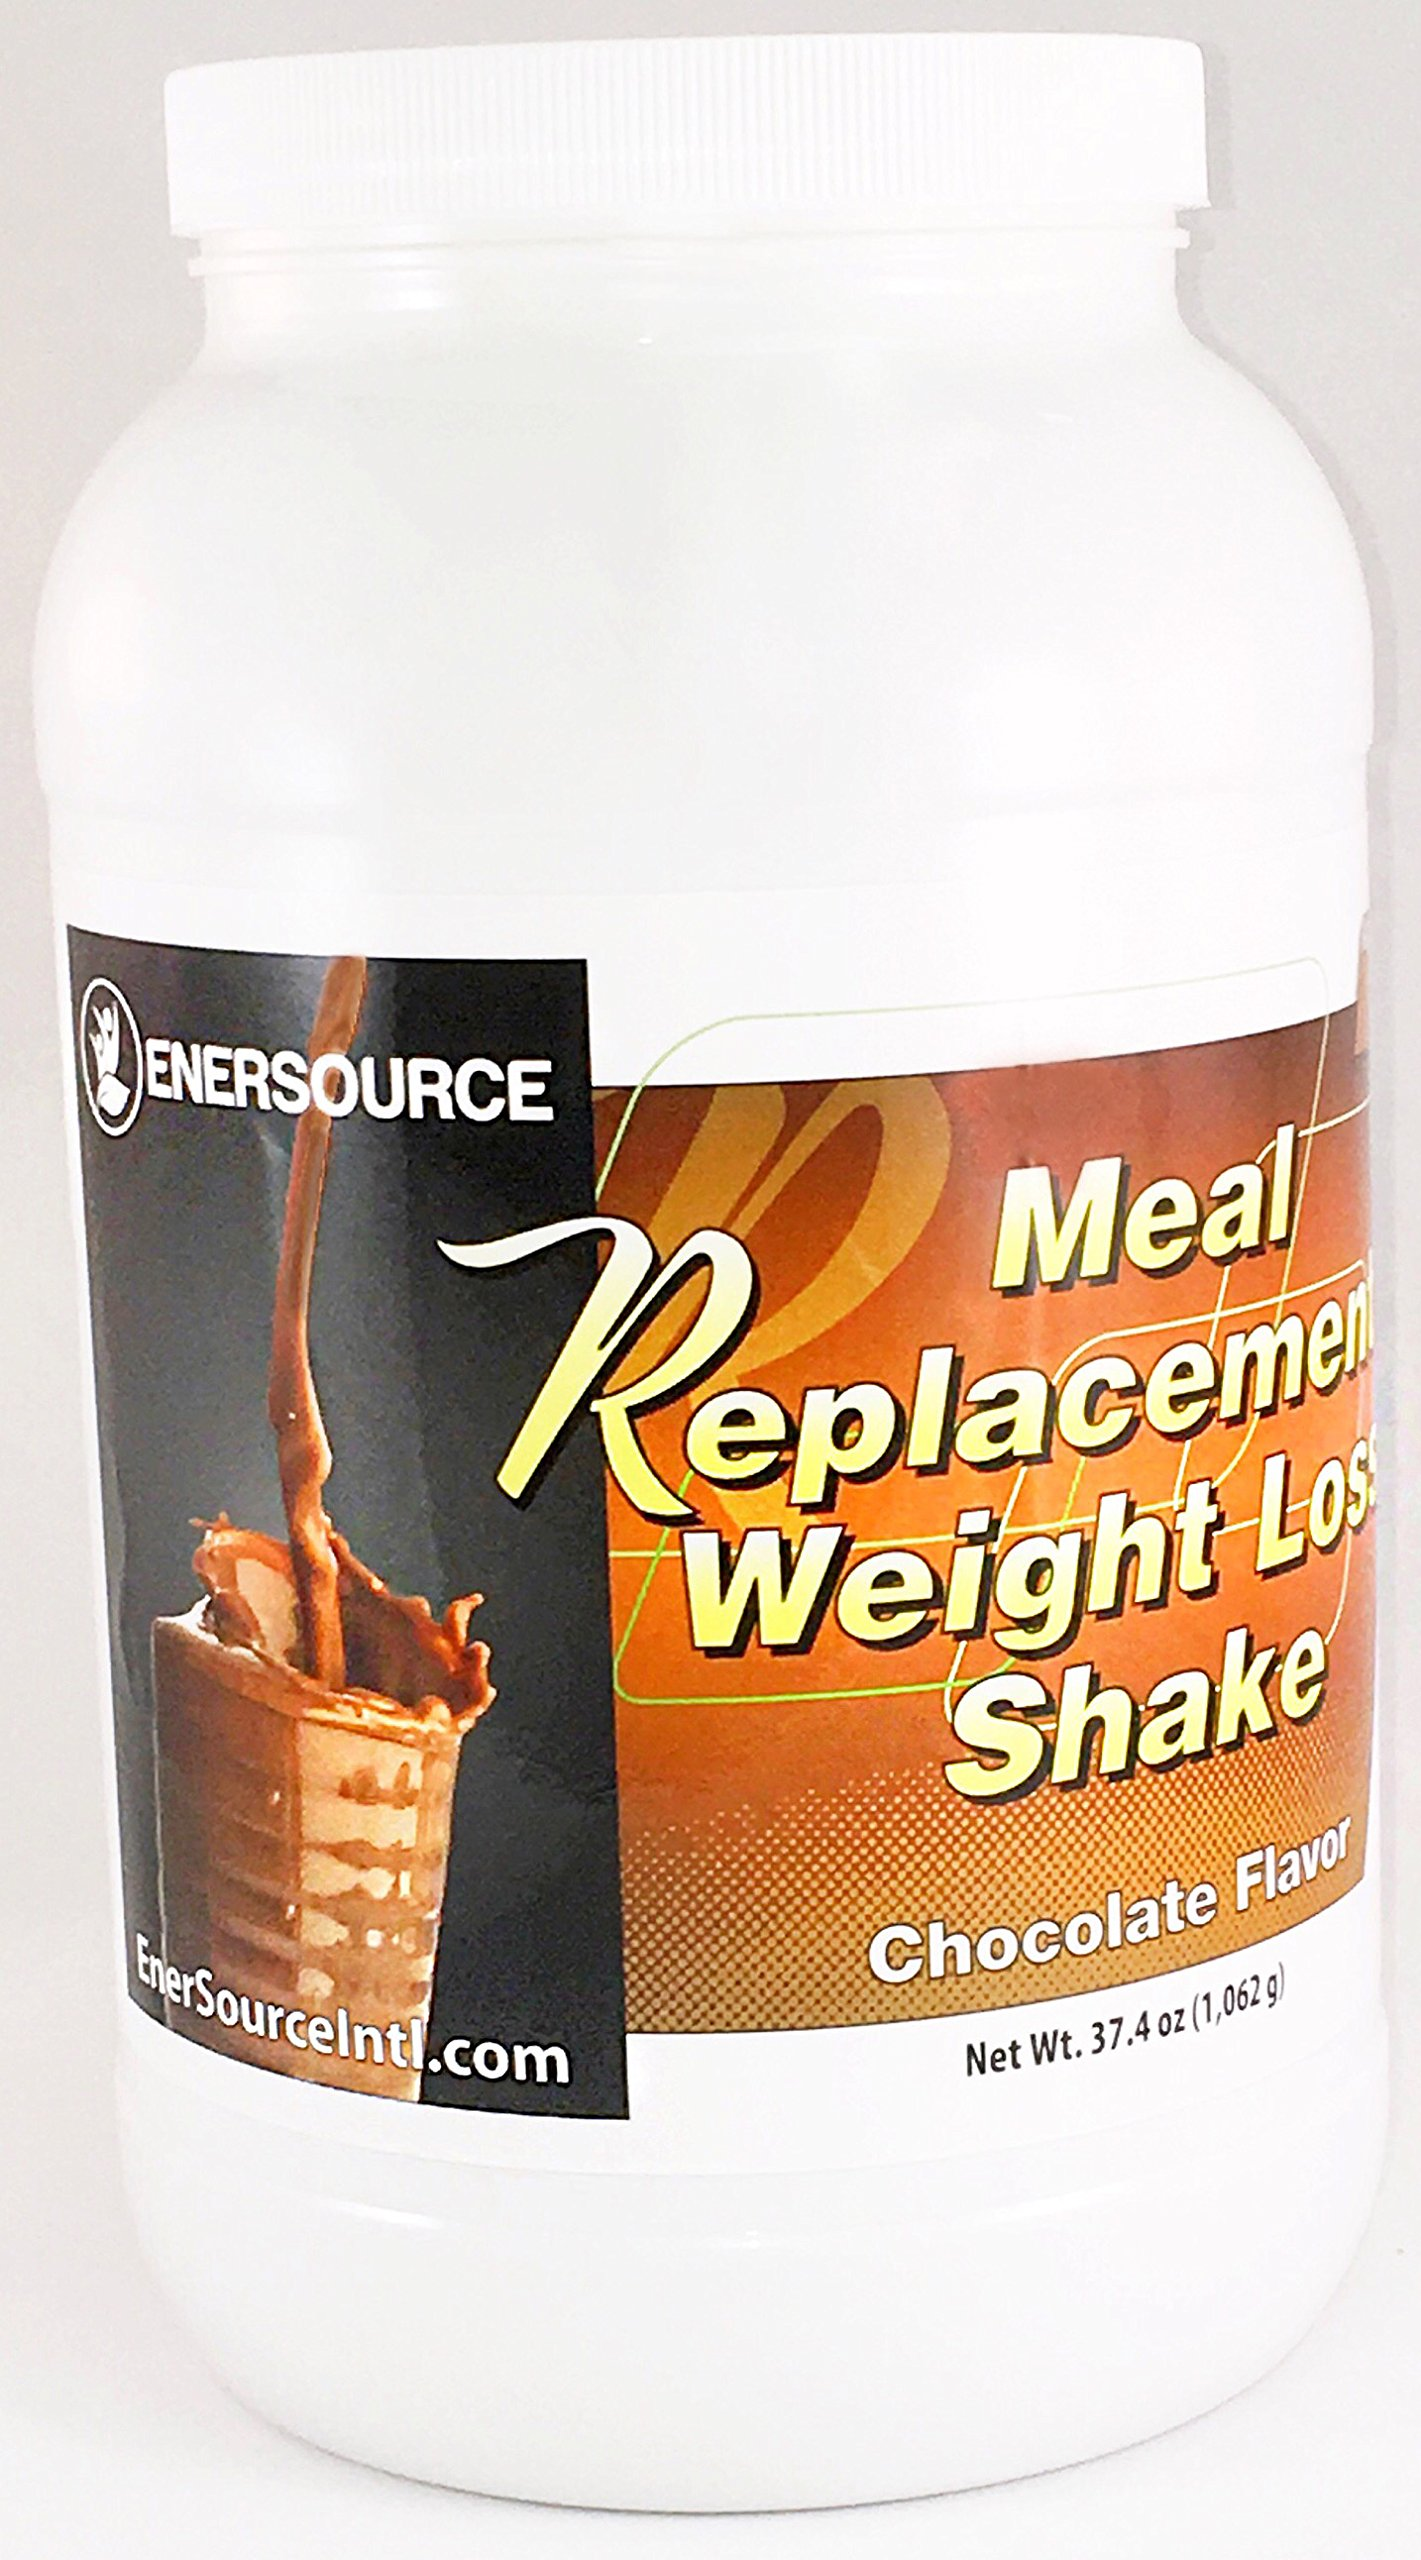 EnerSource Meal Replacement Chocolate Weight Loss Shake with over 26 Vitamins and Minerals and 31g of Protein